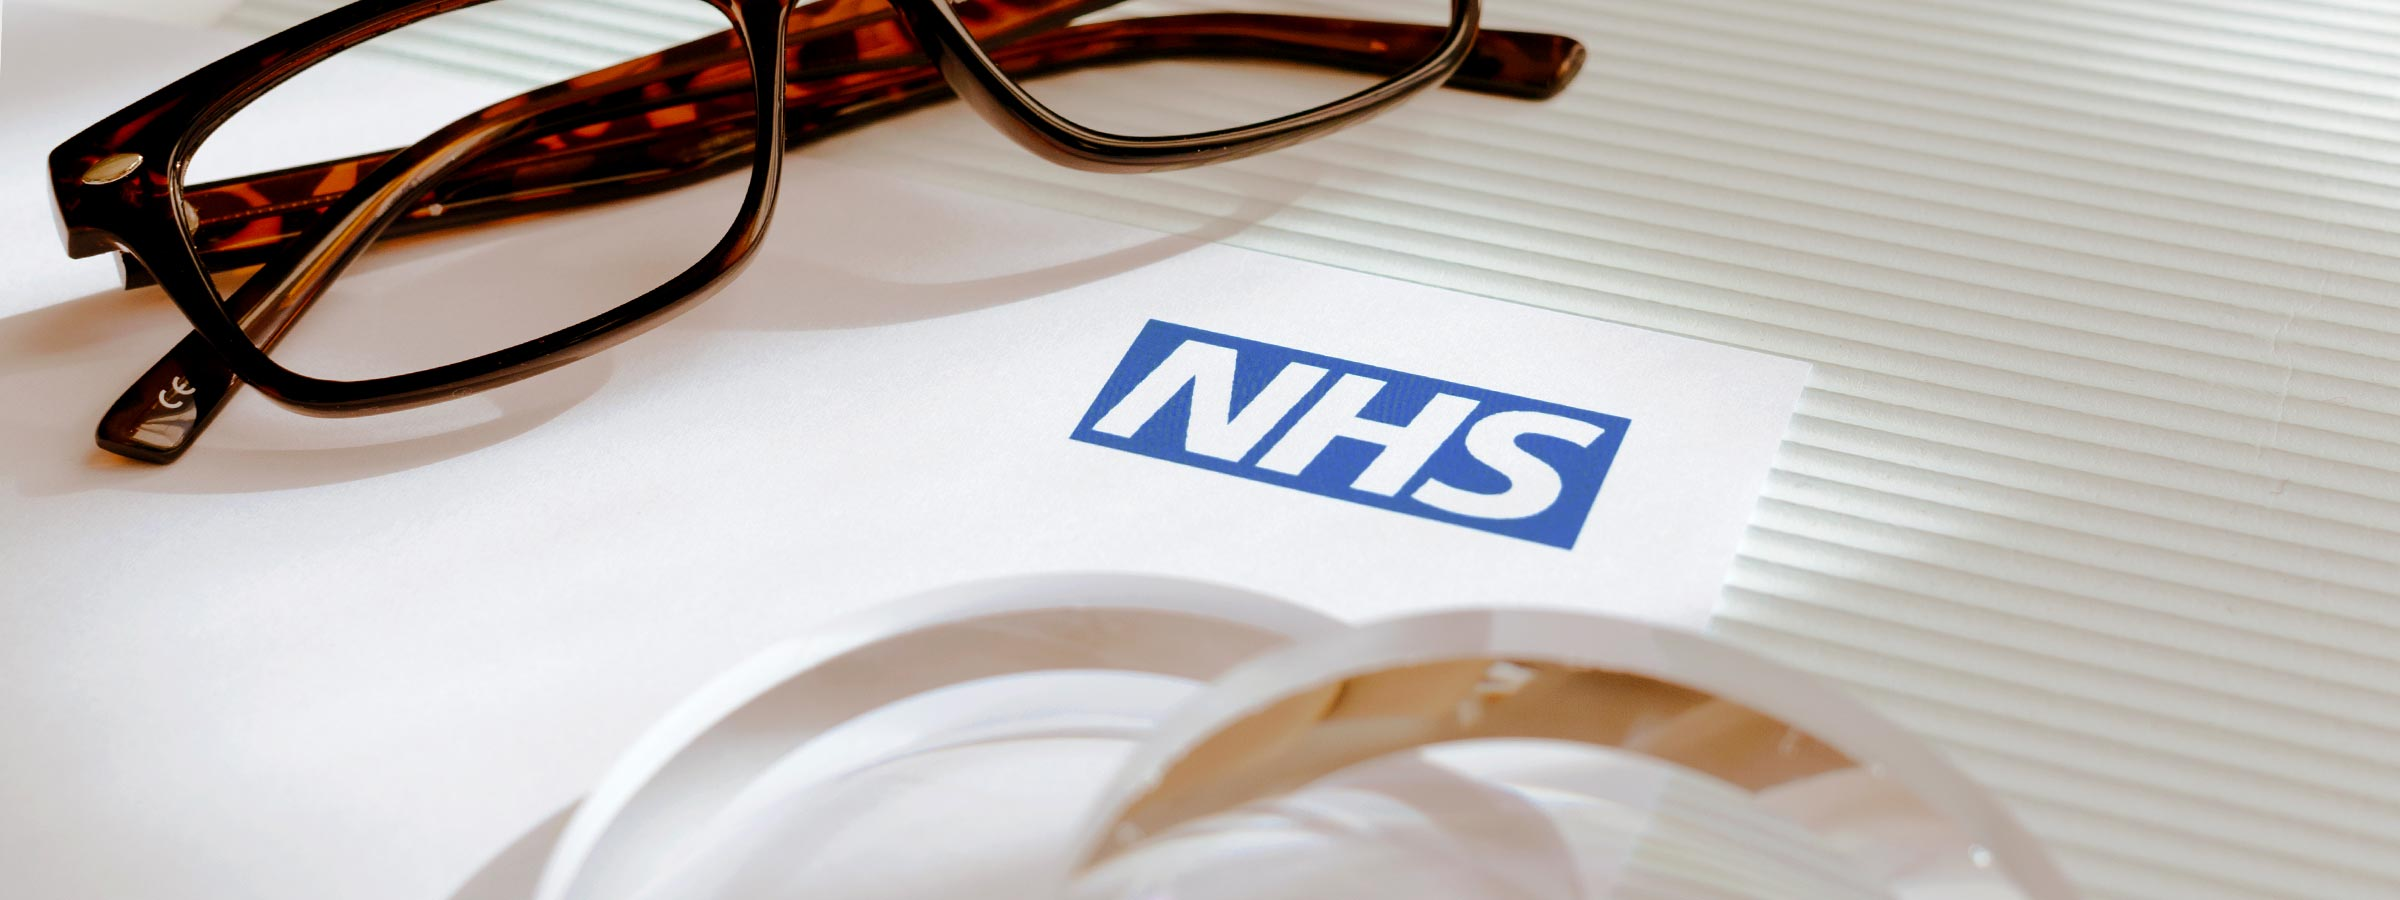 Glasses frames and lenses lying on a piece of paper with the NHS logo